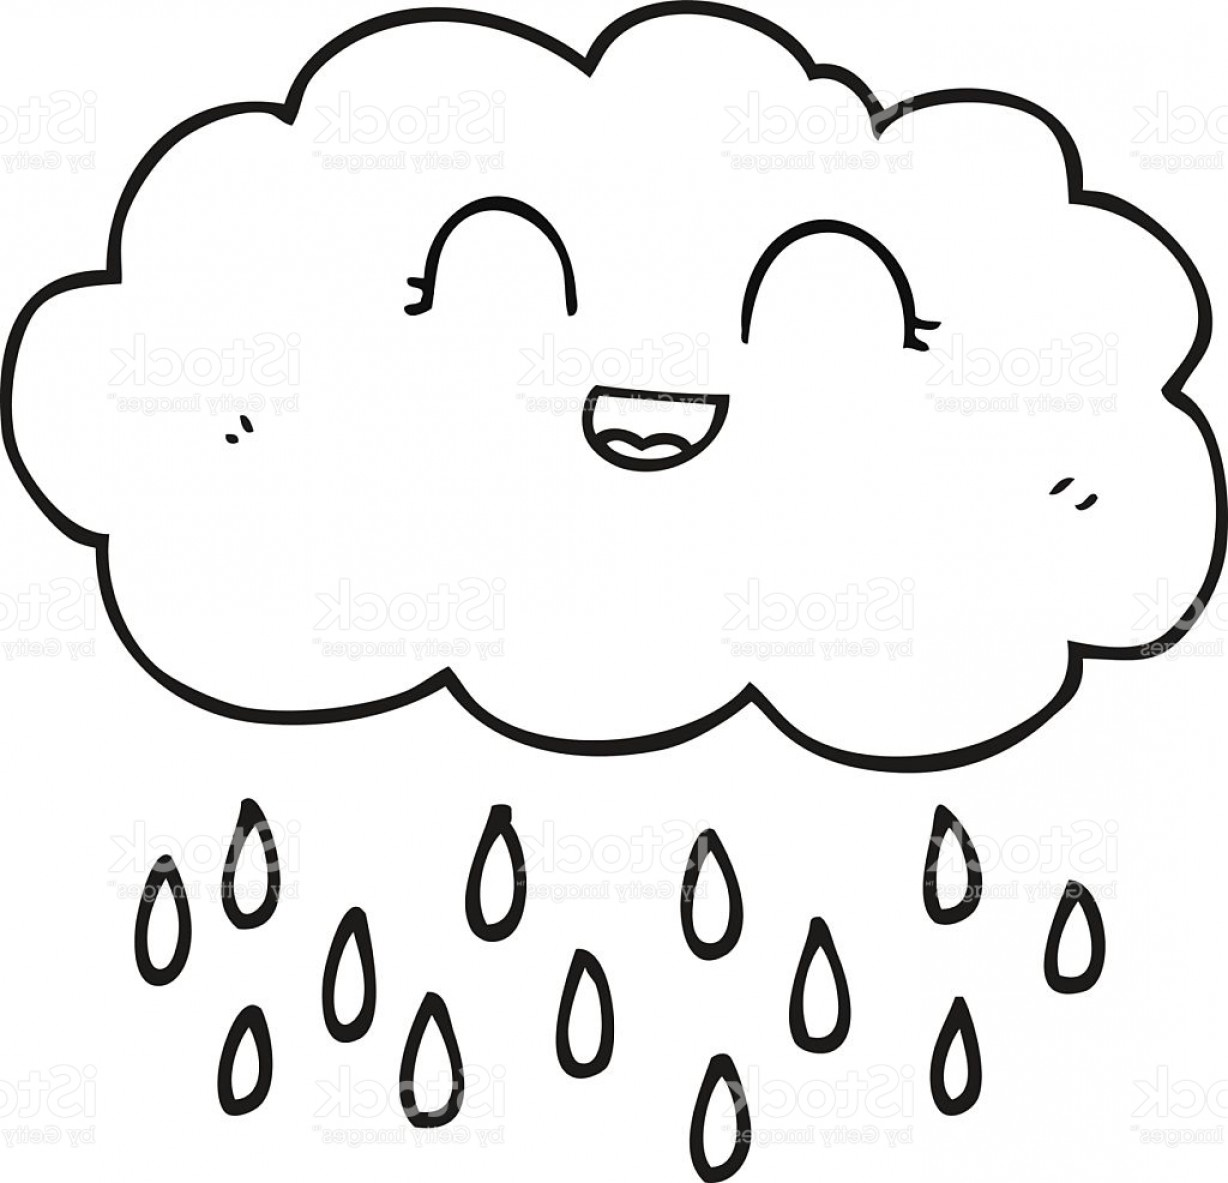 Rain cloud clipart black and white image royalty free library Cloud Black And White Clipart Black And White Cartoon Rain ... image royalty free library